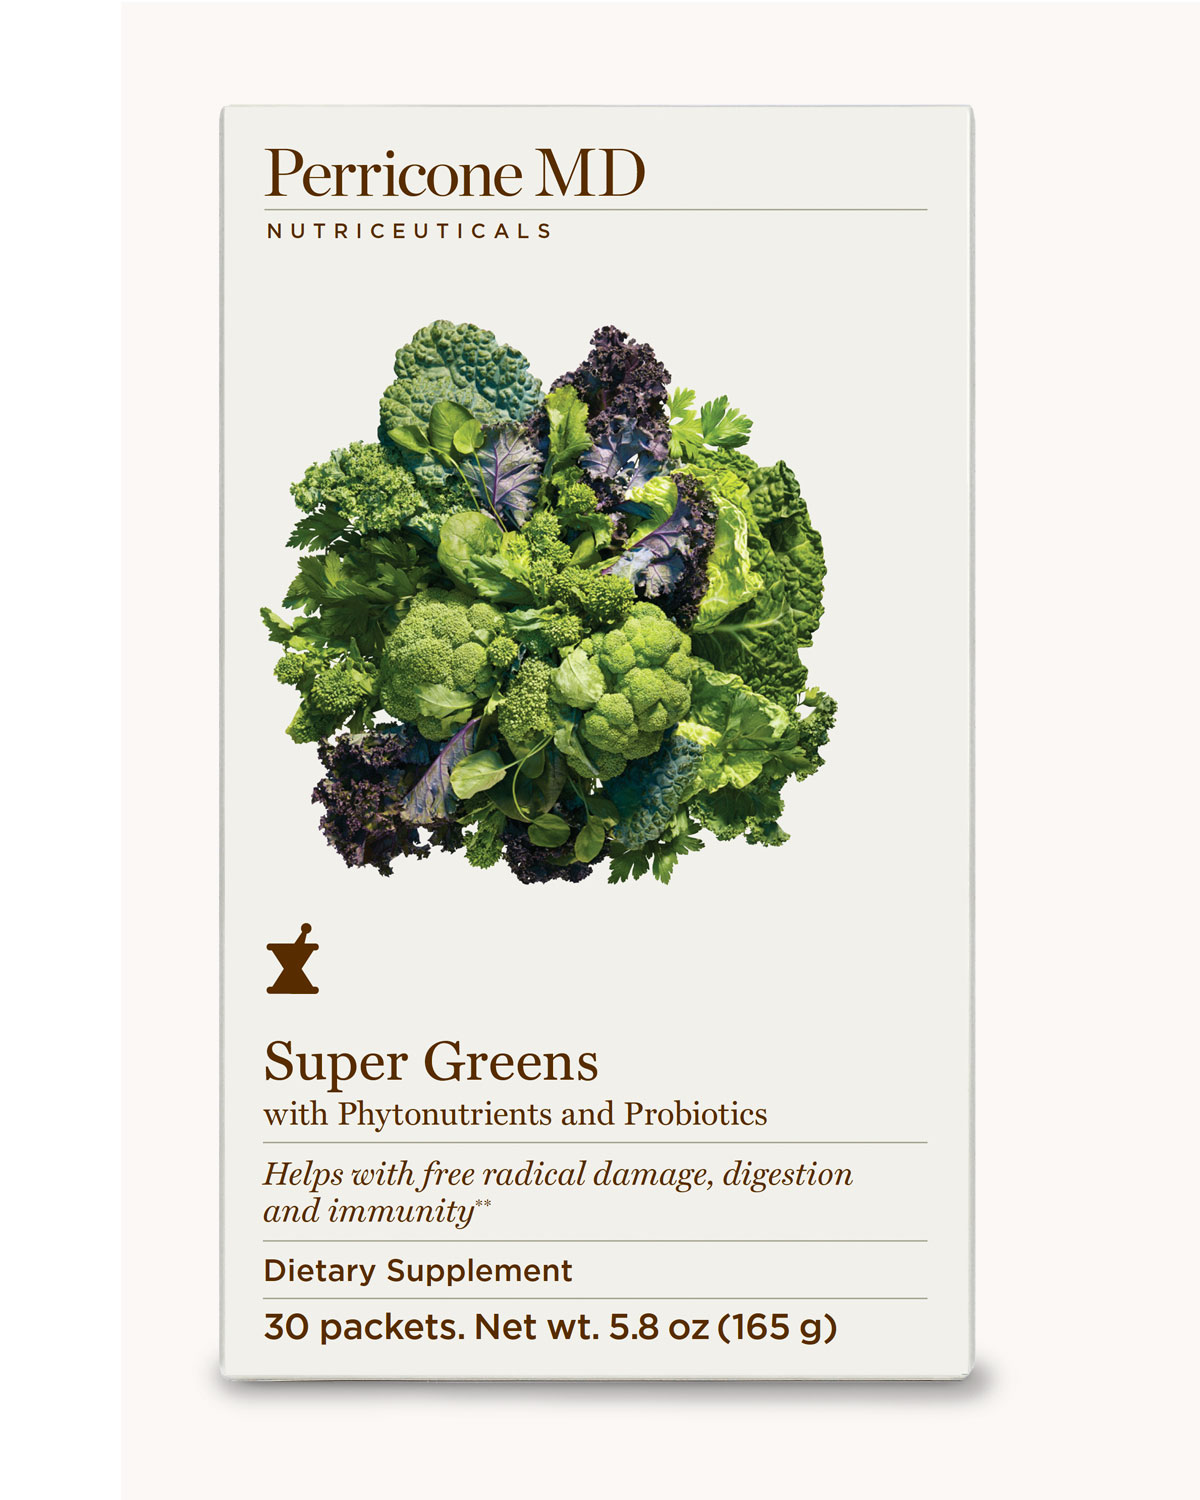 Perricone Md Super Greens 30-Day Dietary Supplement